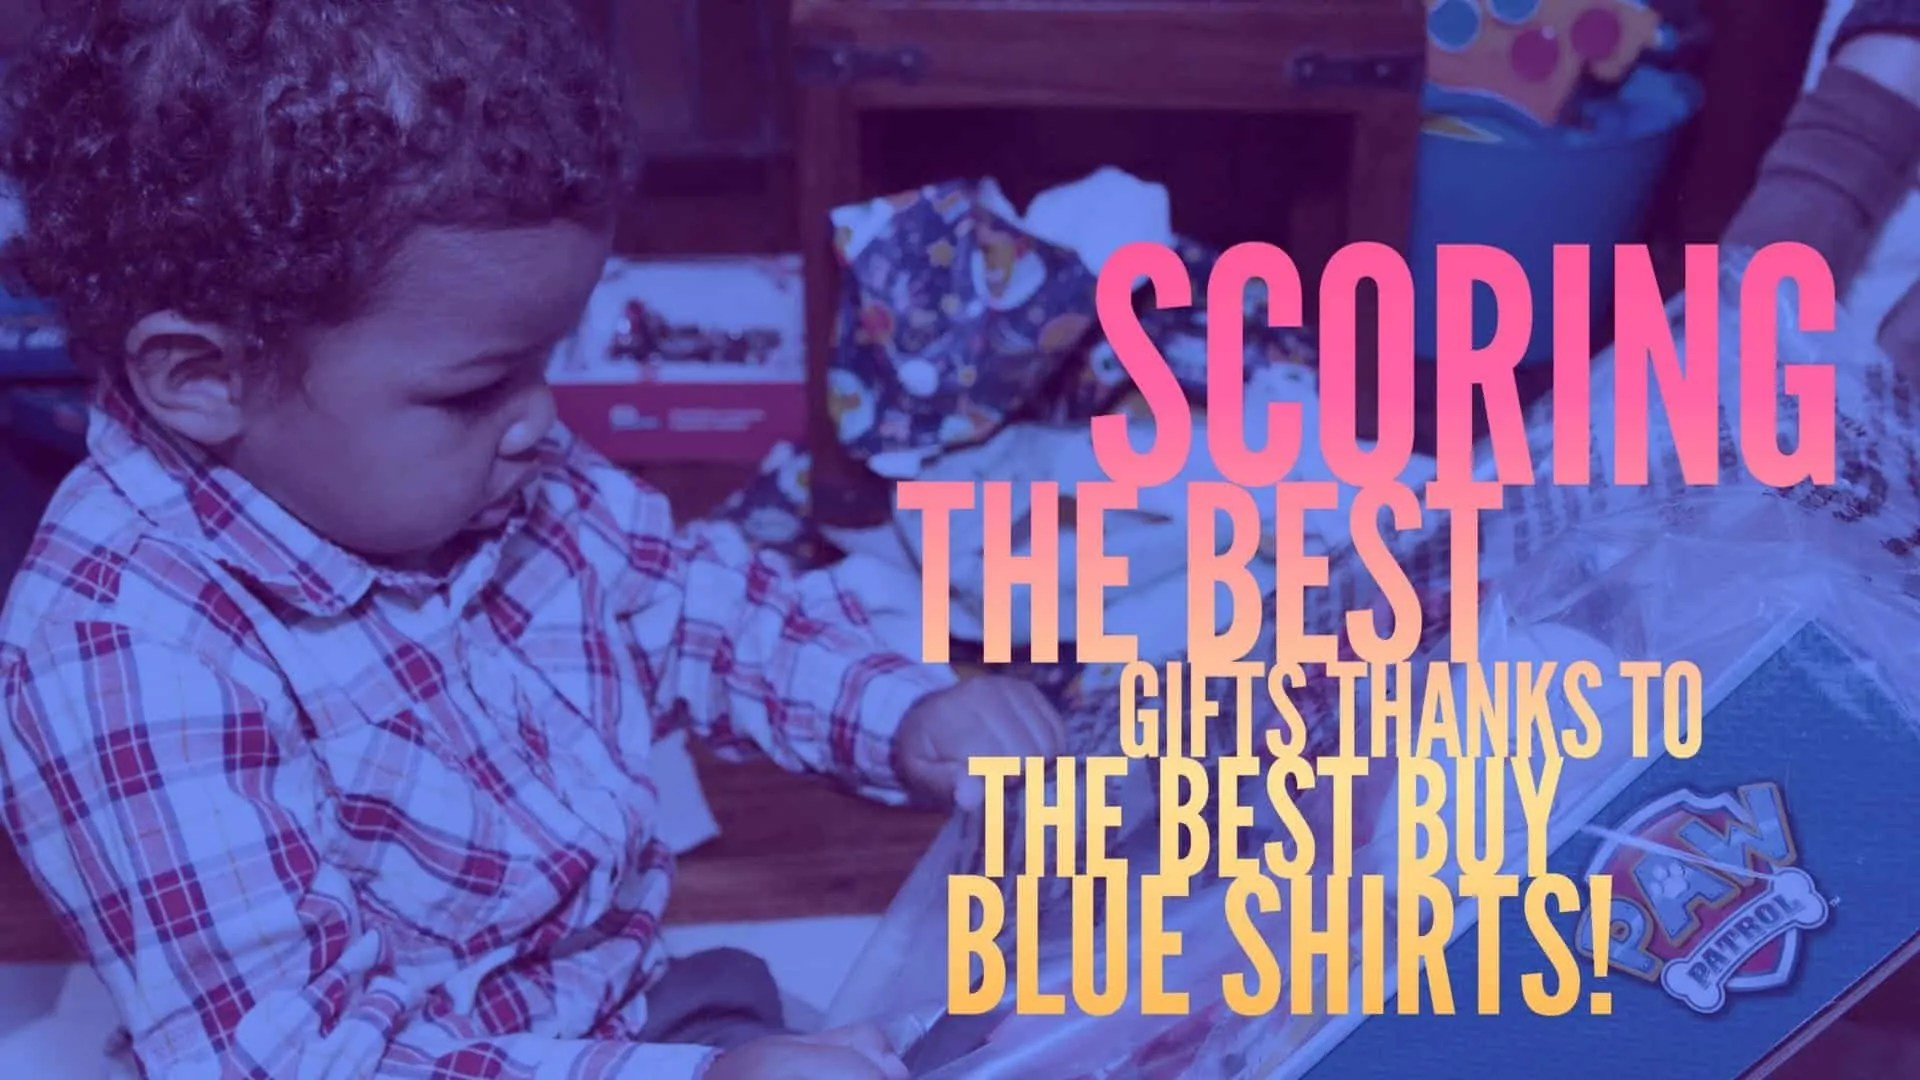 Scoring the Best Gifts Thanks to the Best Buy Blue Shirts! (Featured Image)